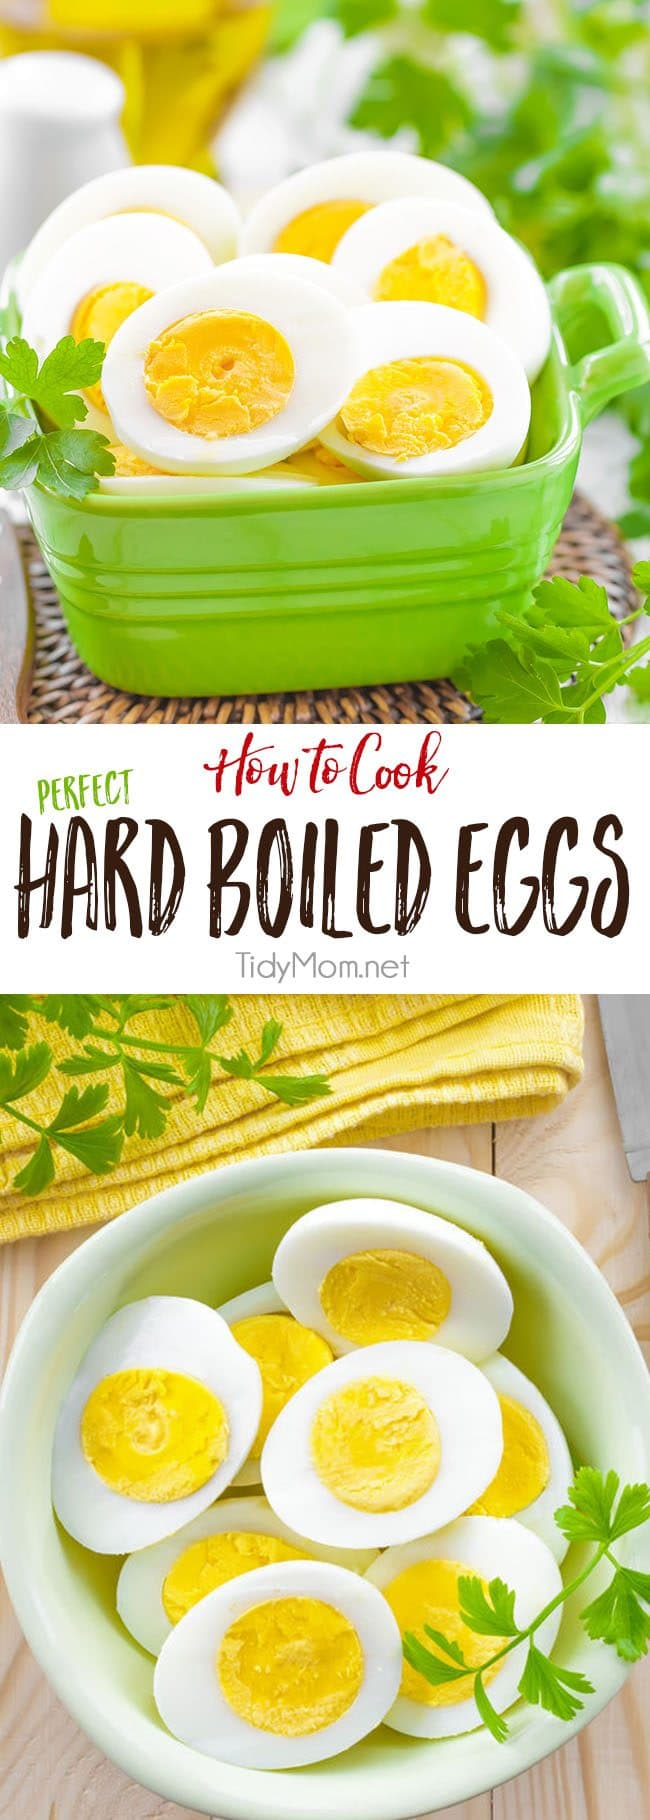 Since hard boiled eggs are notoriously easy yet difficult to master. Learn how to cook PERFECT HARD BOILED EGGS every time at TidyMom.net